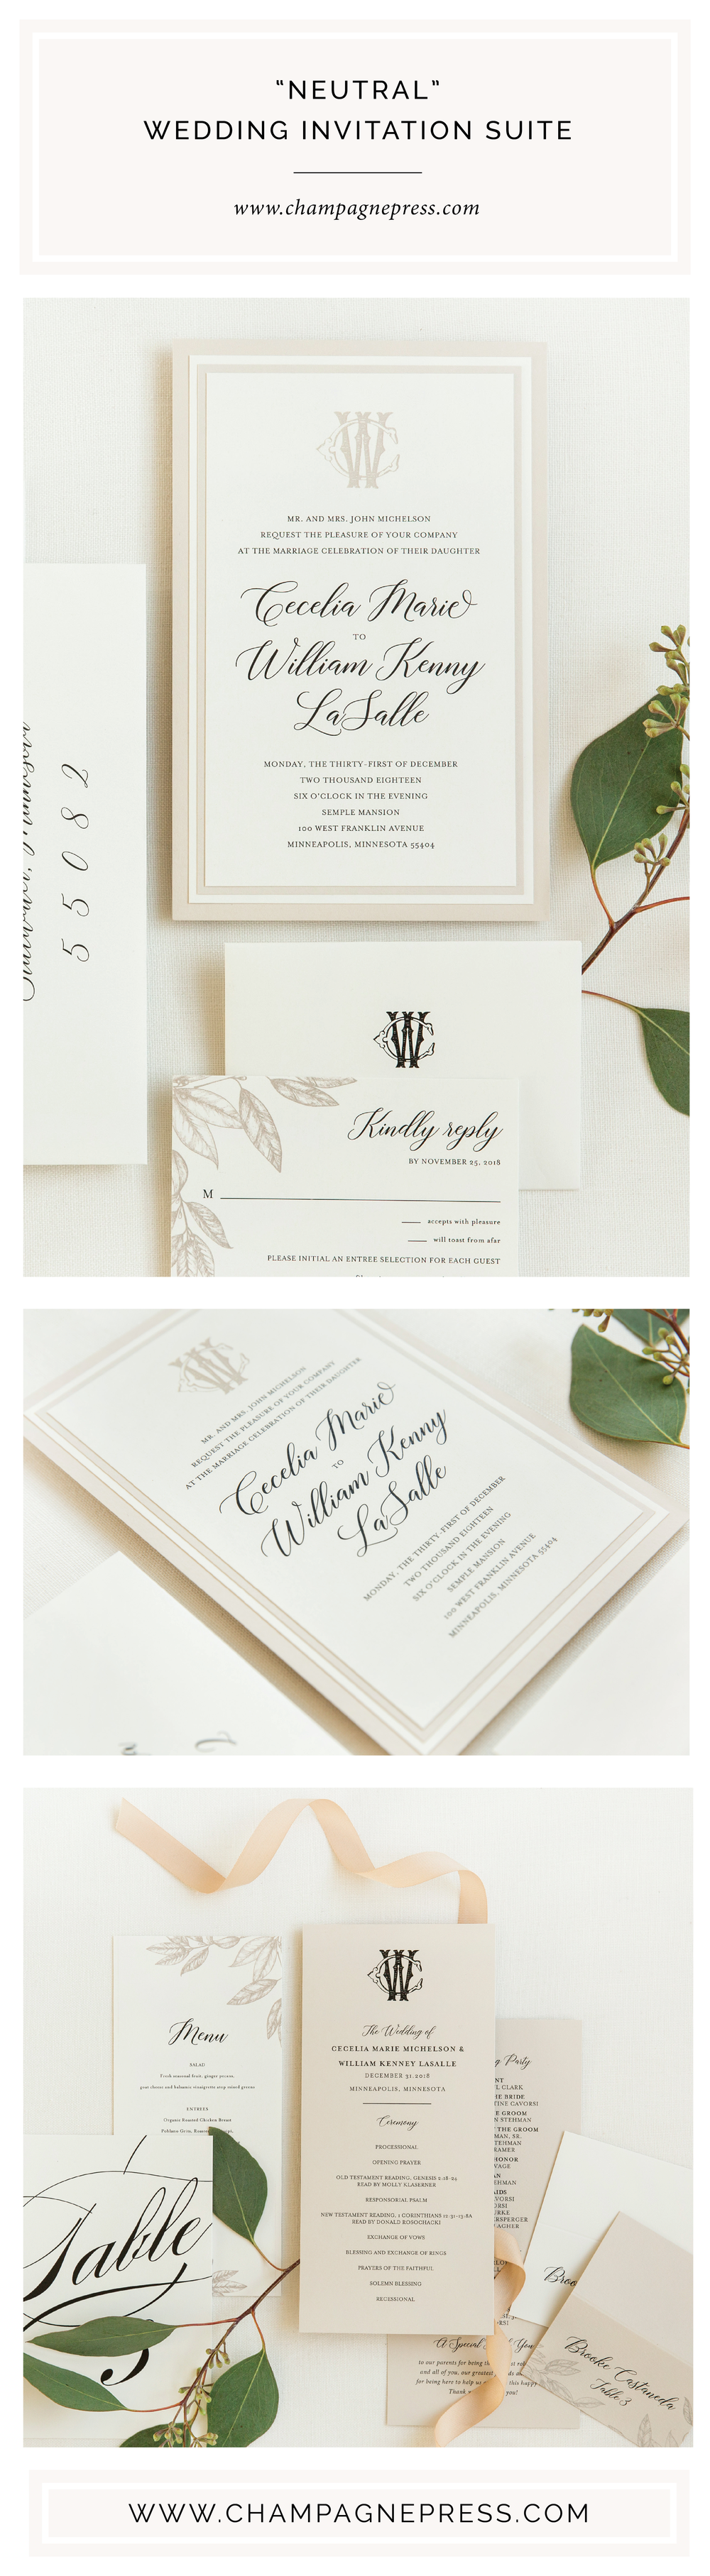 Champagne Press Neutral Wedding Invitation Suite